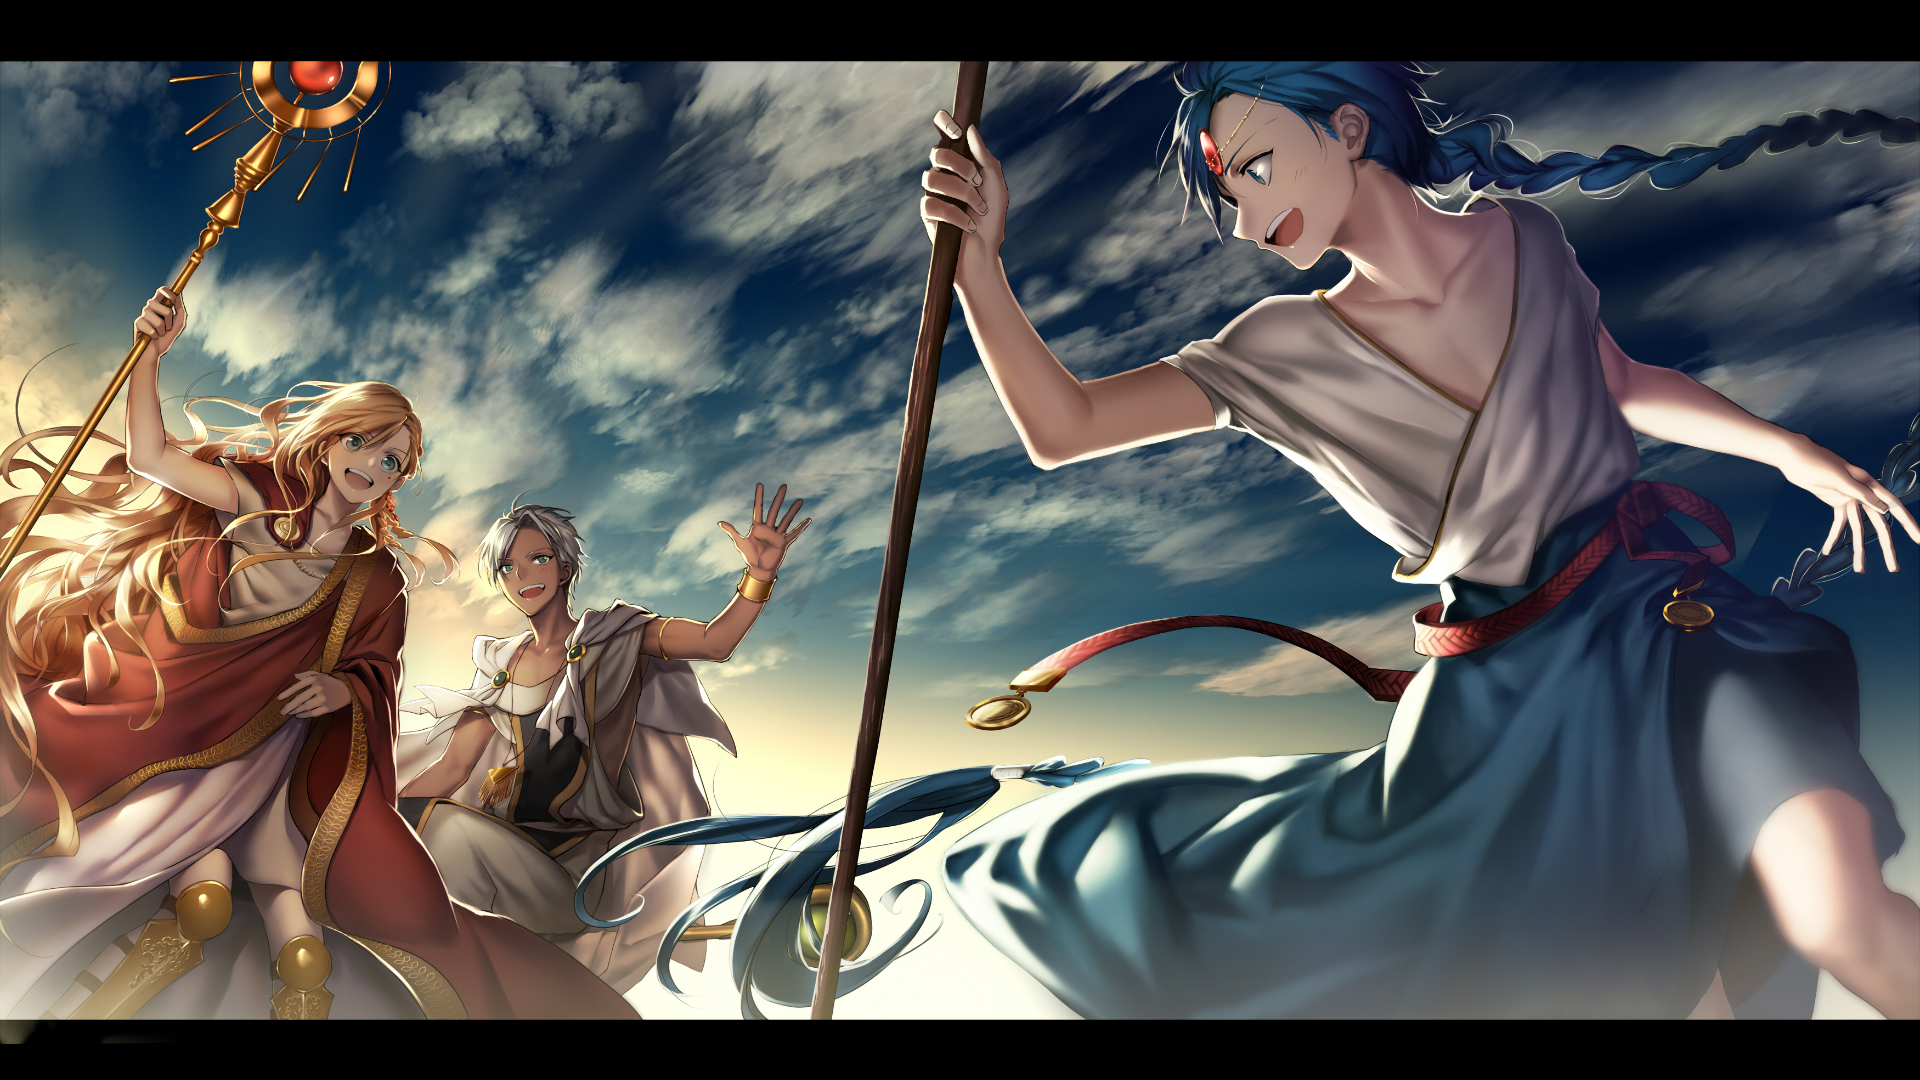 1920x1080 Magi The Labyrinth Of Magic Wallpaper Background Image